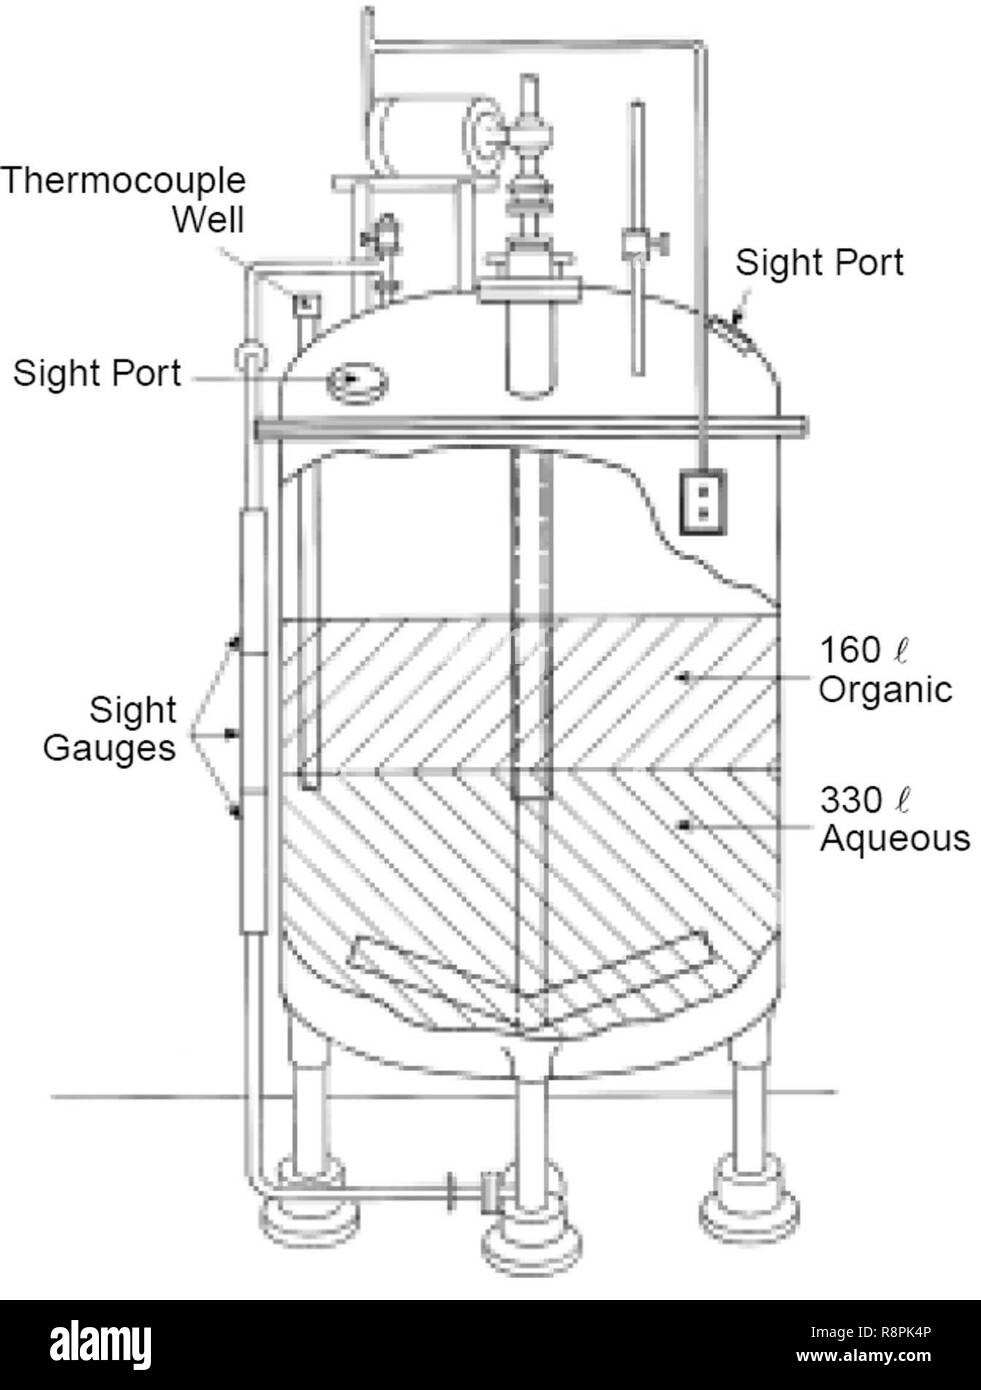 Left: Configuration of solutions (aqueous and organic) in the vessel before the accident. Right: Vessel in which the accident occurred - Stock Image